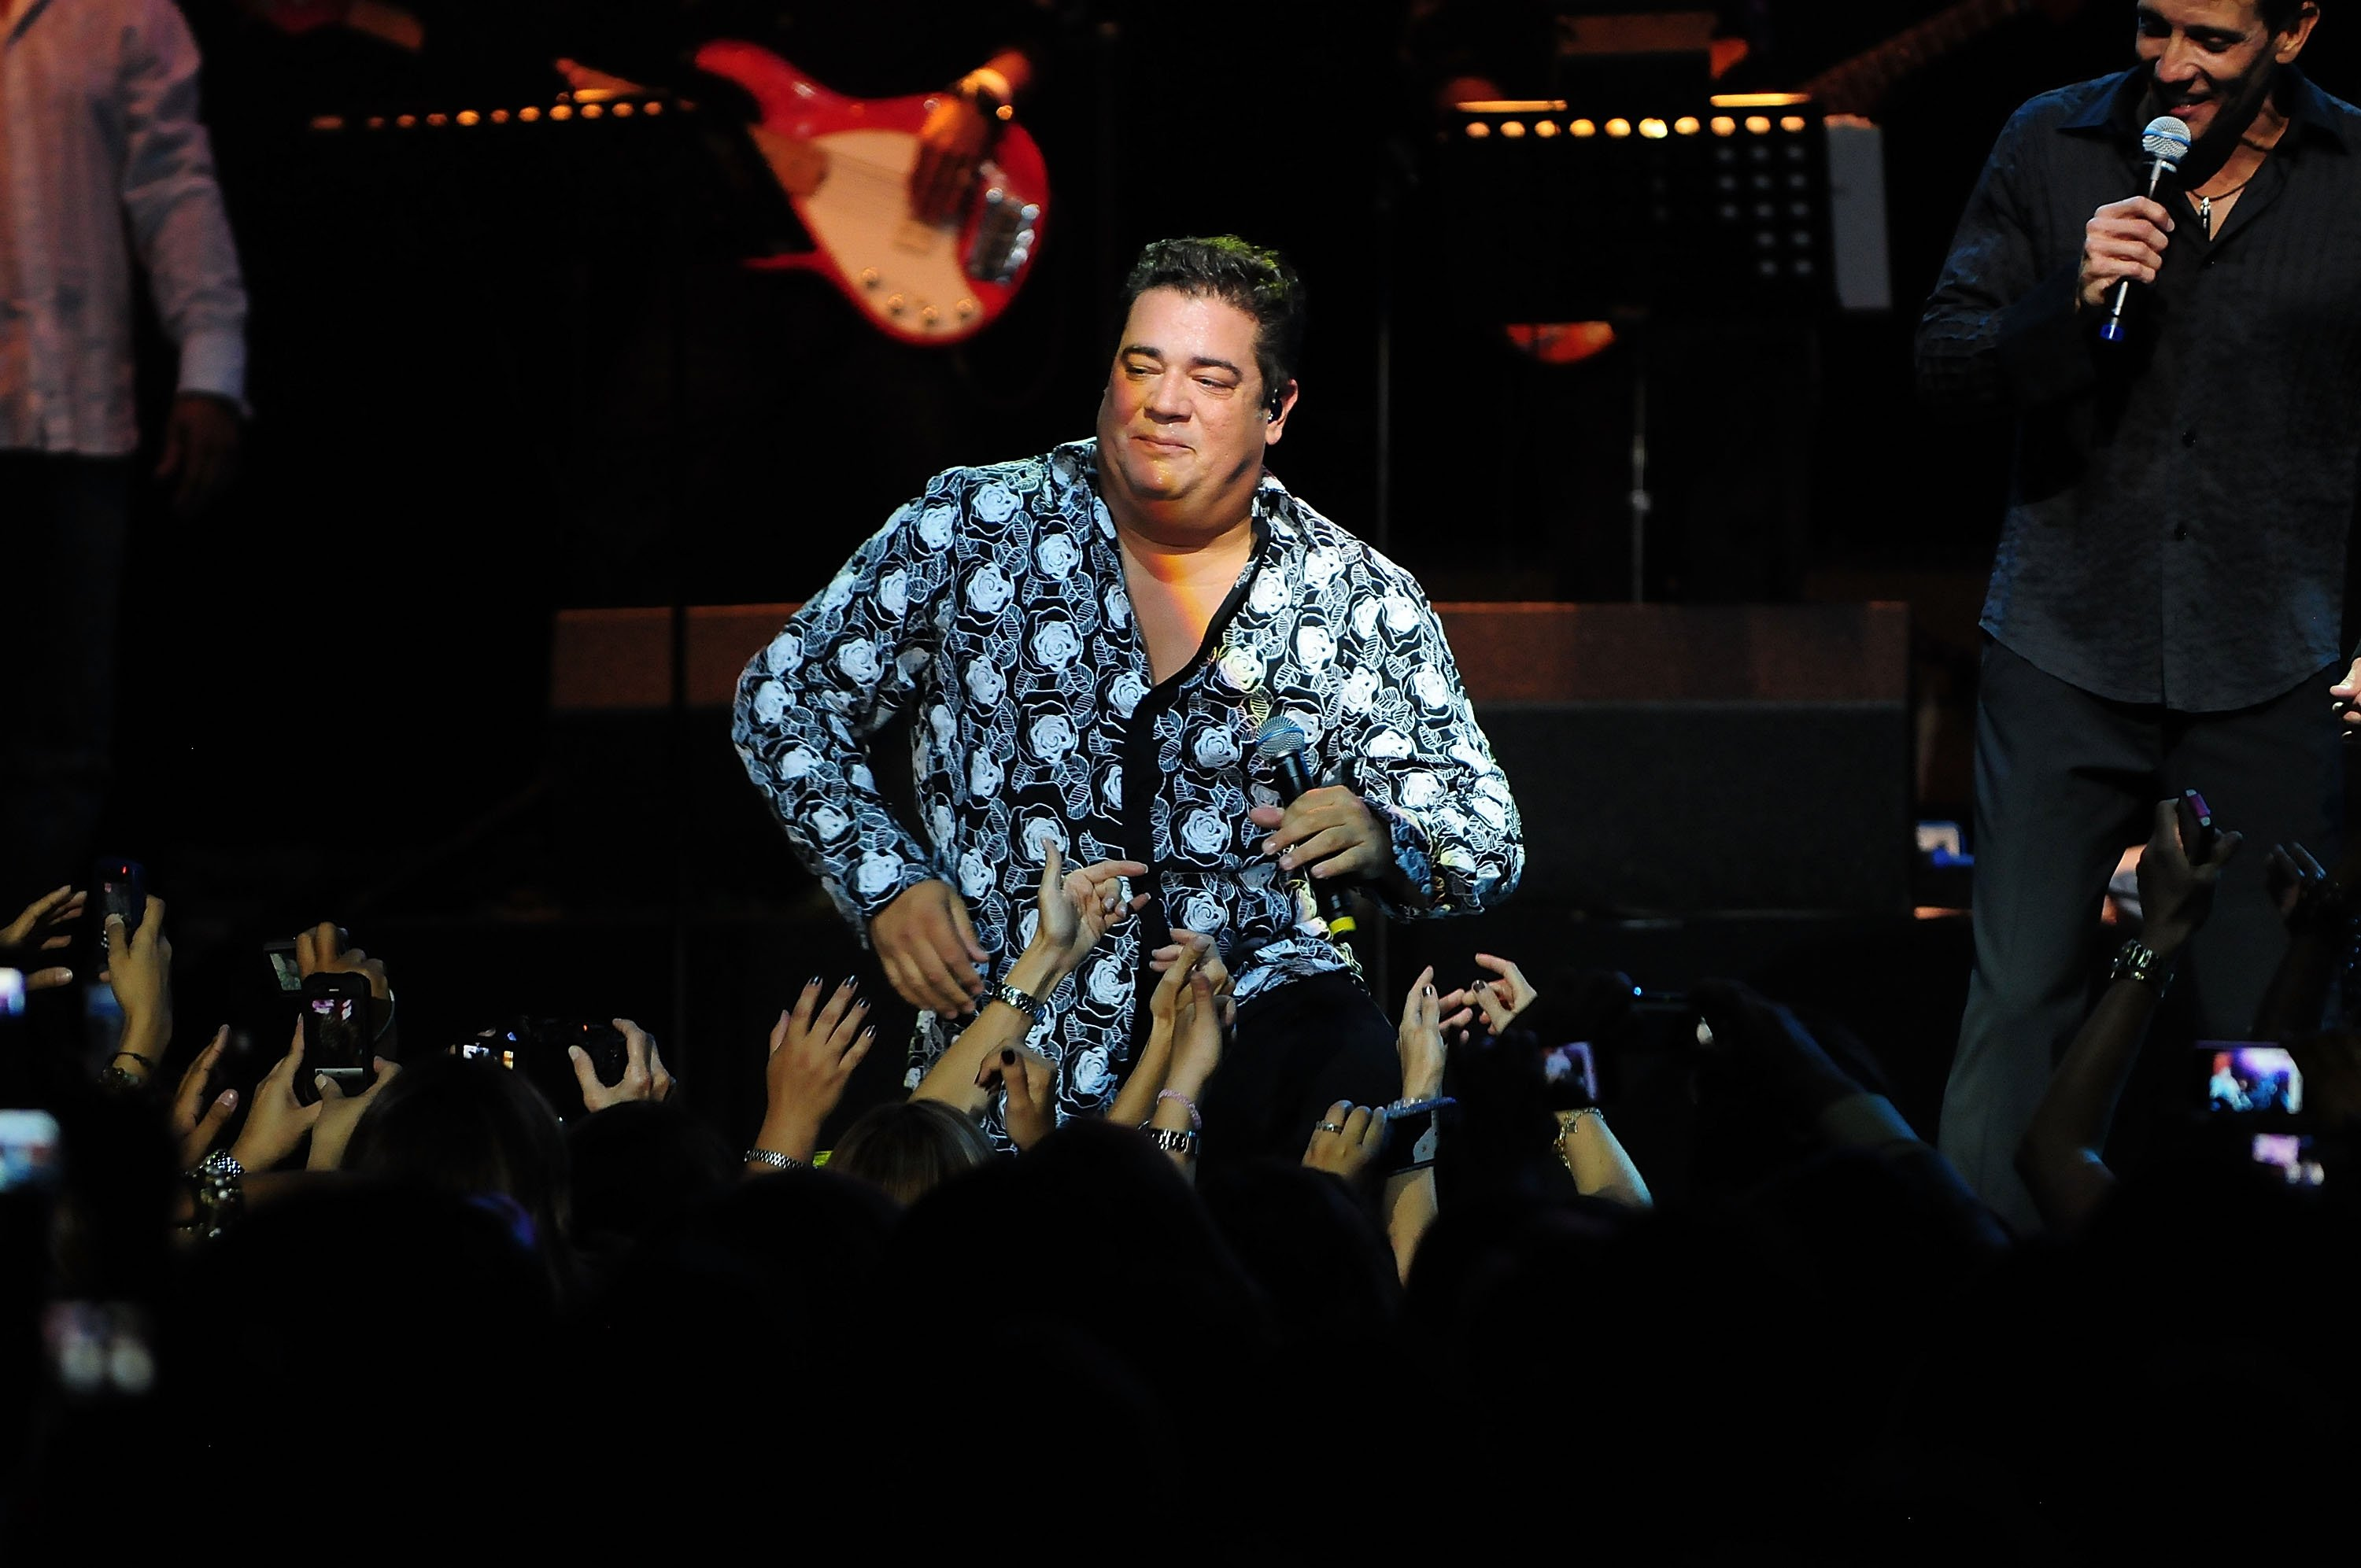 Ray Reyes performs at James L Knight Center on July 23, 2011 in Miami, Florida | Photo: Getty Images